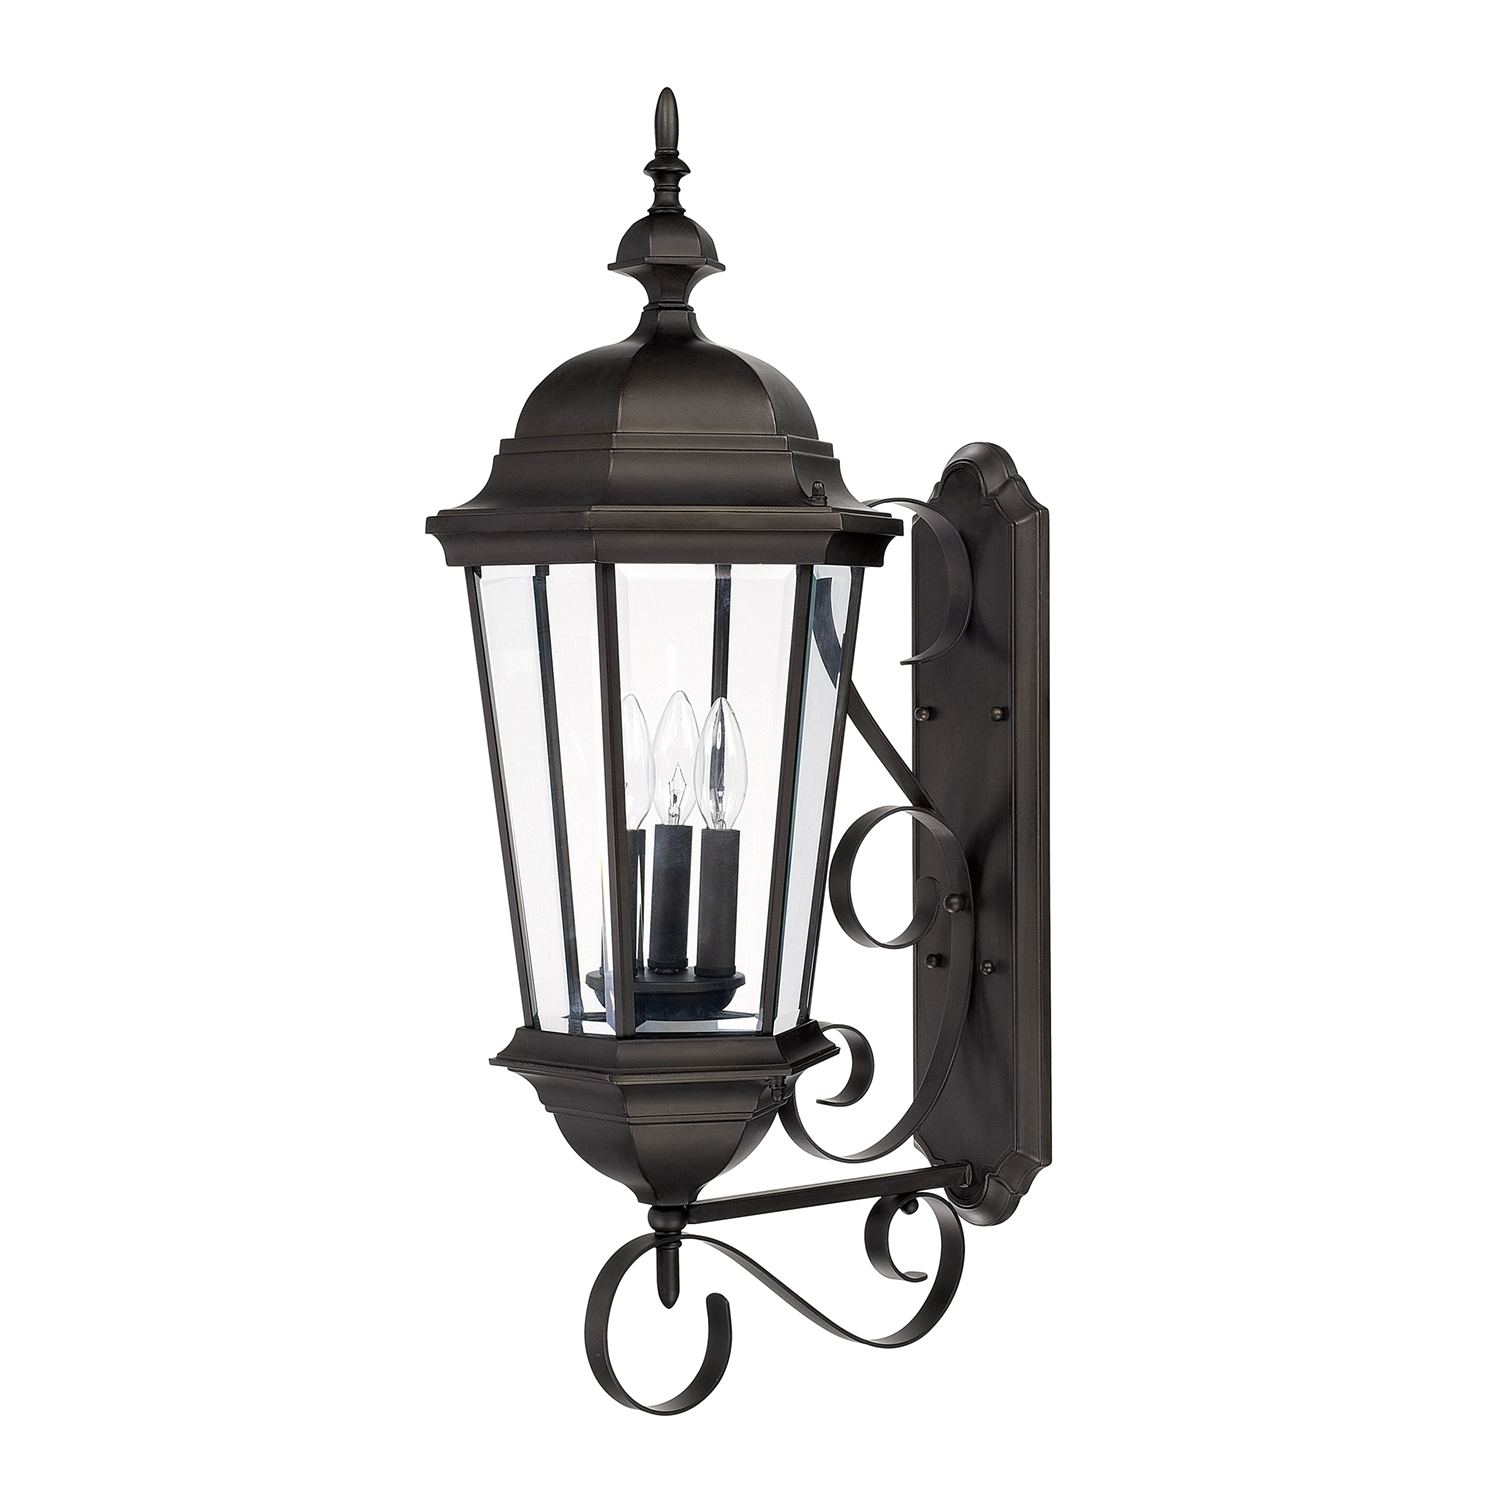 Capital Lighting Fixture Company With Regard To 2018 Outdoor Hanging Carriage Lights (Gallery 6 of 20)